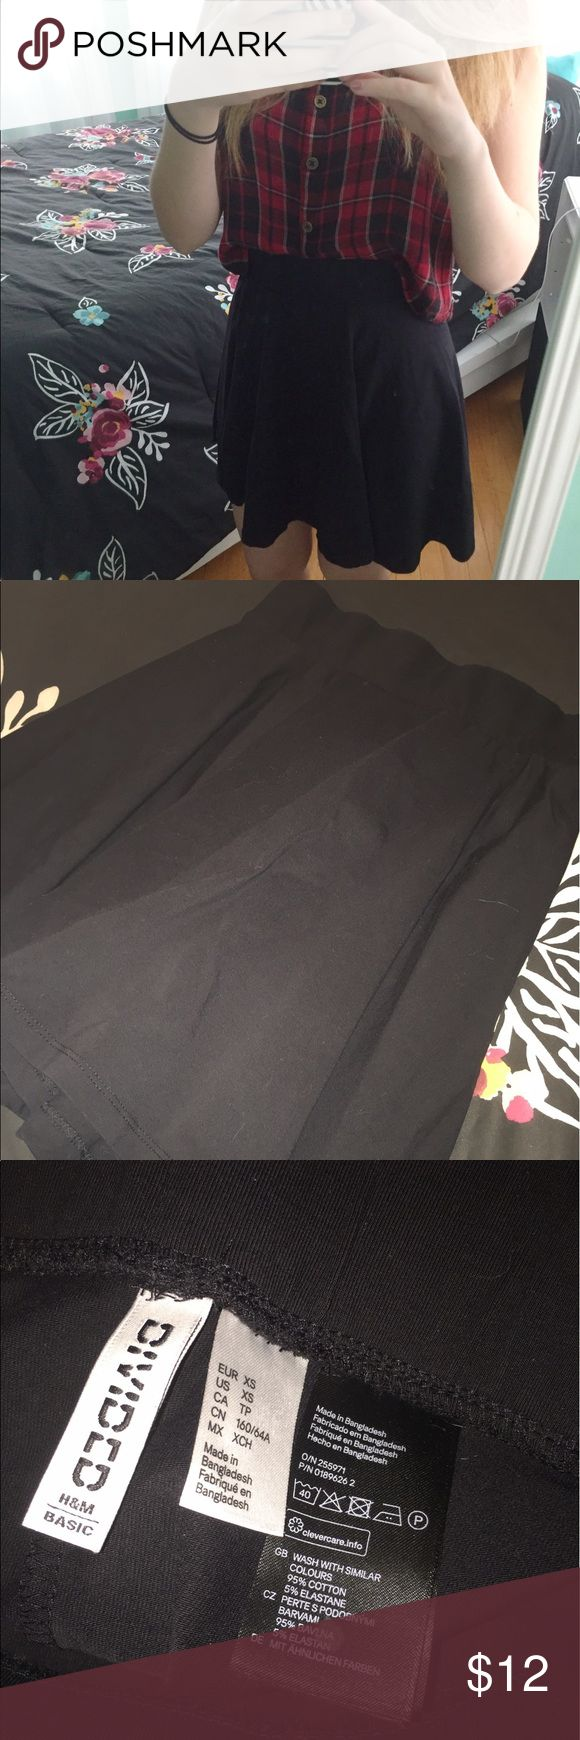 H&M Black Circle Skirt This item has only been worn once or twice. It is in excellent condition. Any questions about this item please let me know! Price can be negotiable depending on offer!! Divided Skirts Circle & Skater